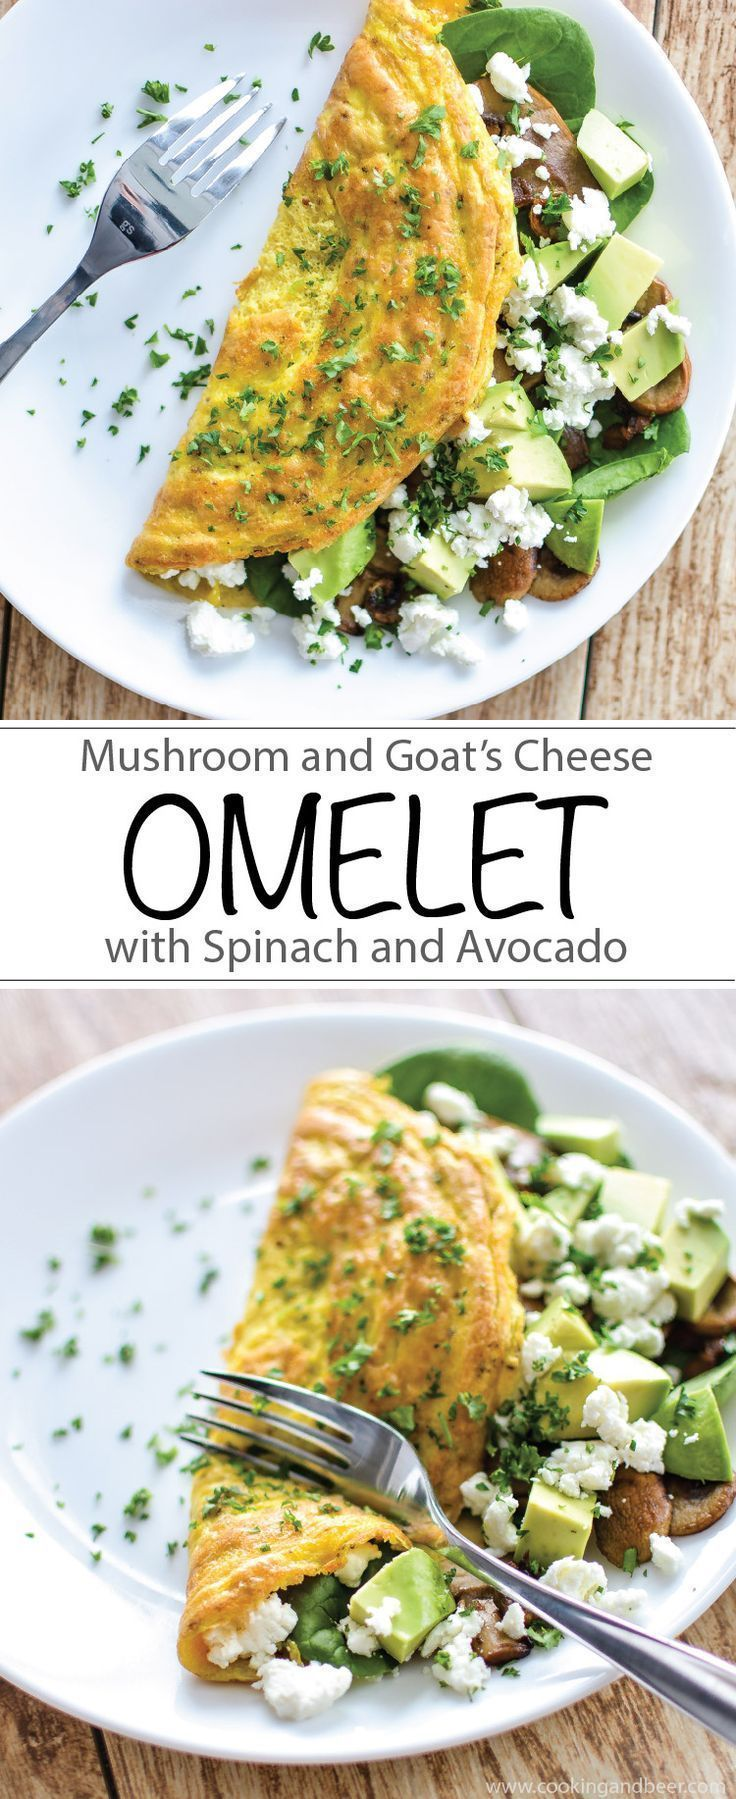 Mushroom and Goat's Cheese Omelet with Spinach and Avocado is the perfect protein-packed, gluten-free, dairy-free breakfast!   www.cookingandbee...